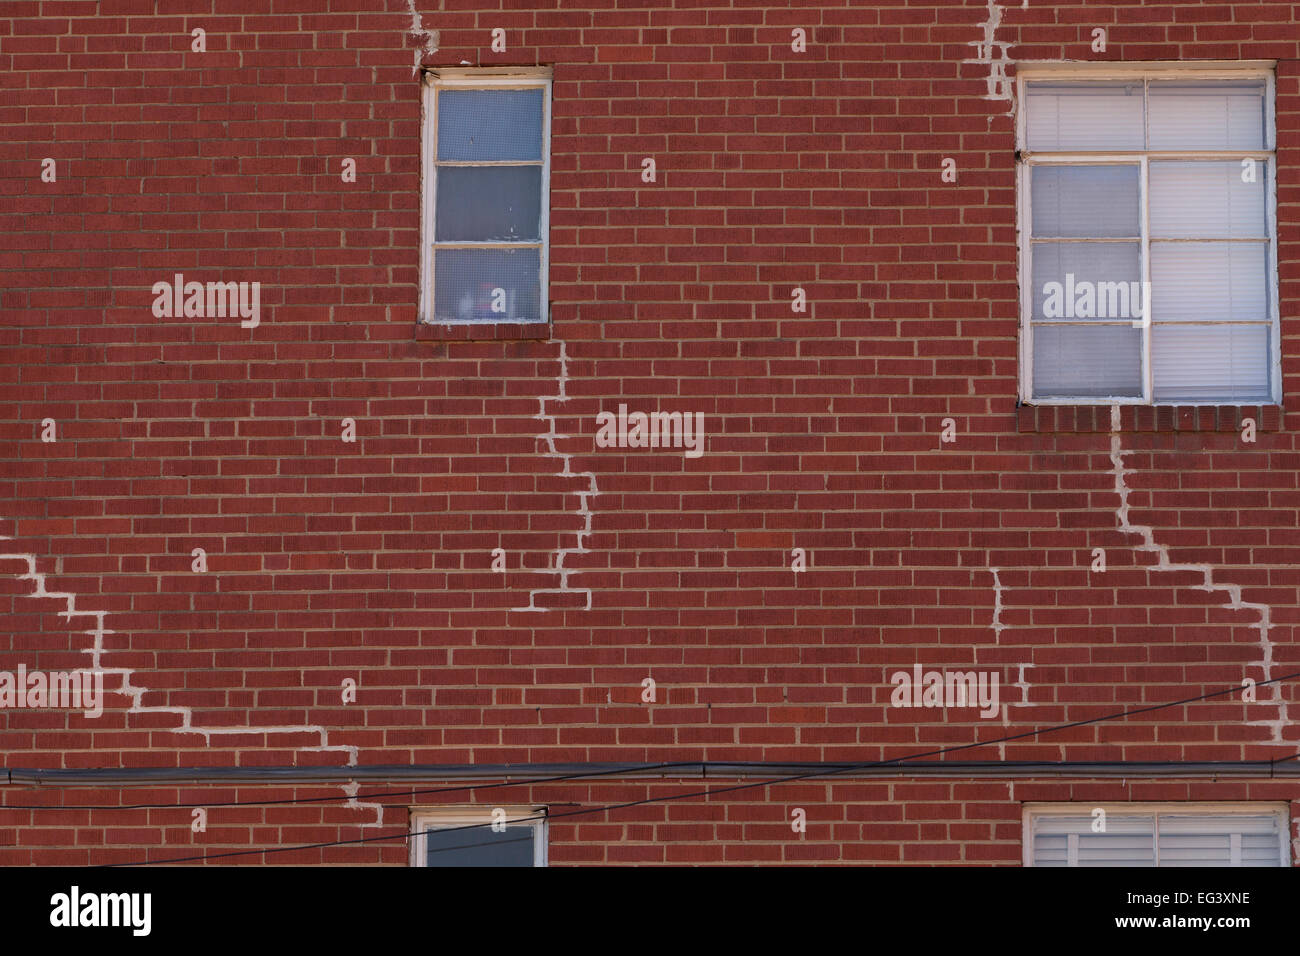 Visible crack repairs on brick exterior of building - USA - Stock Image